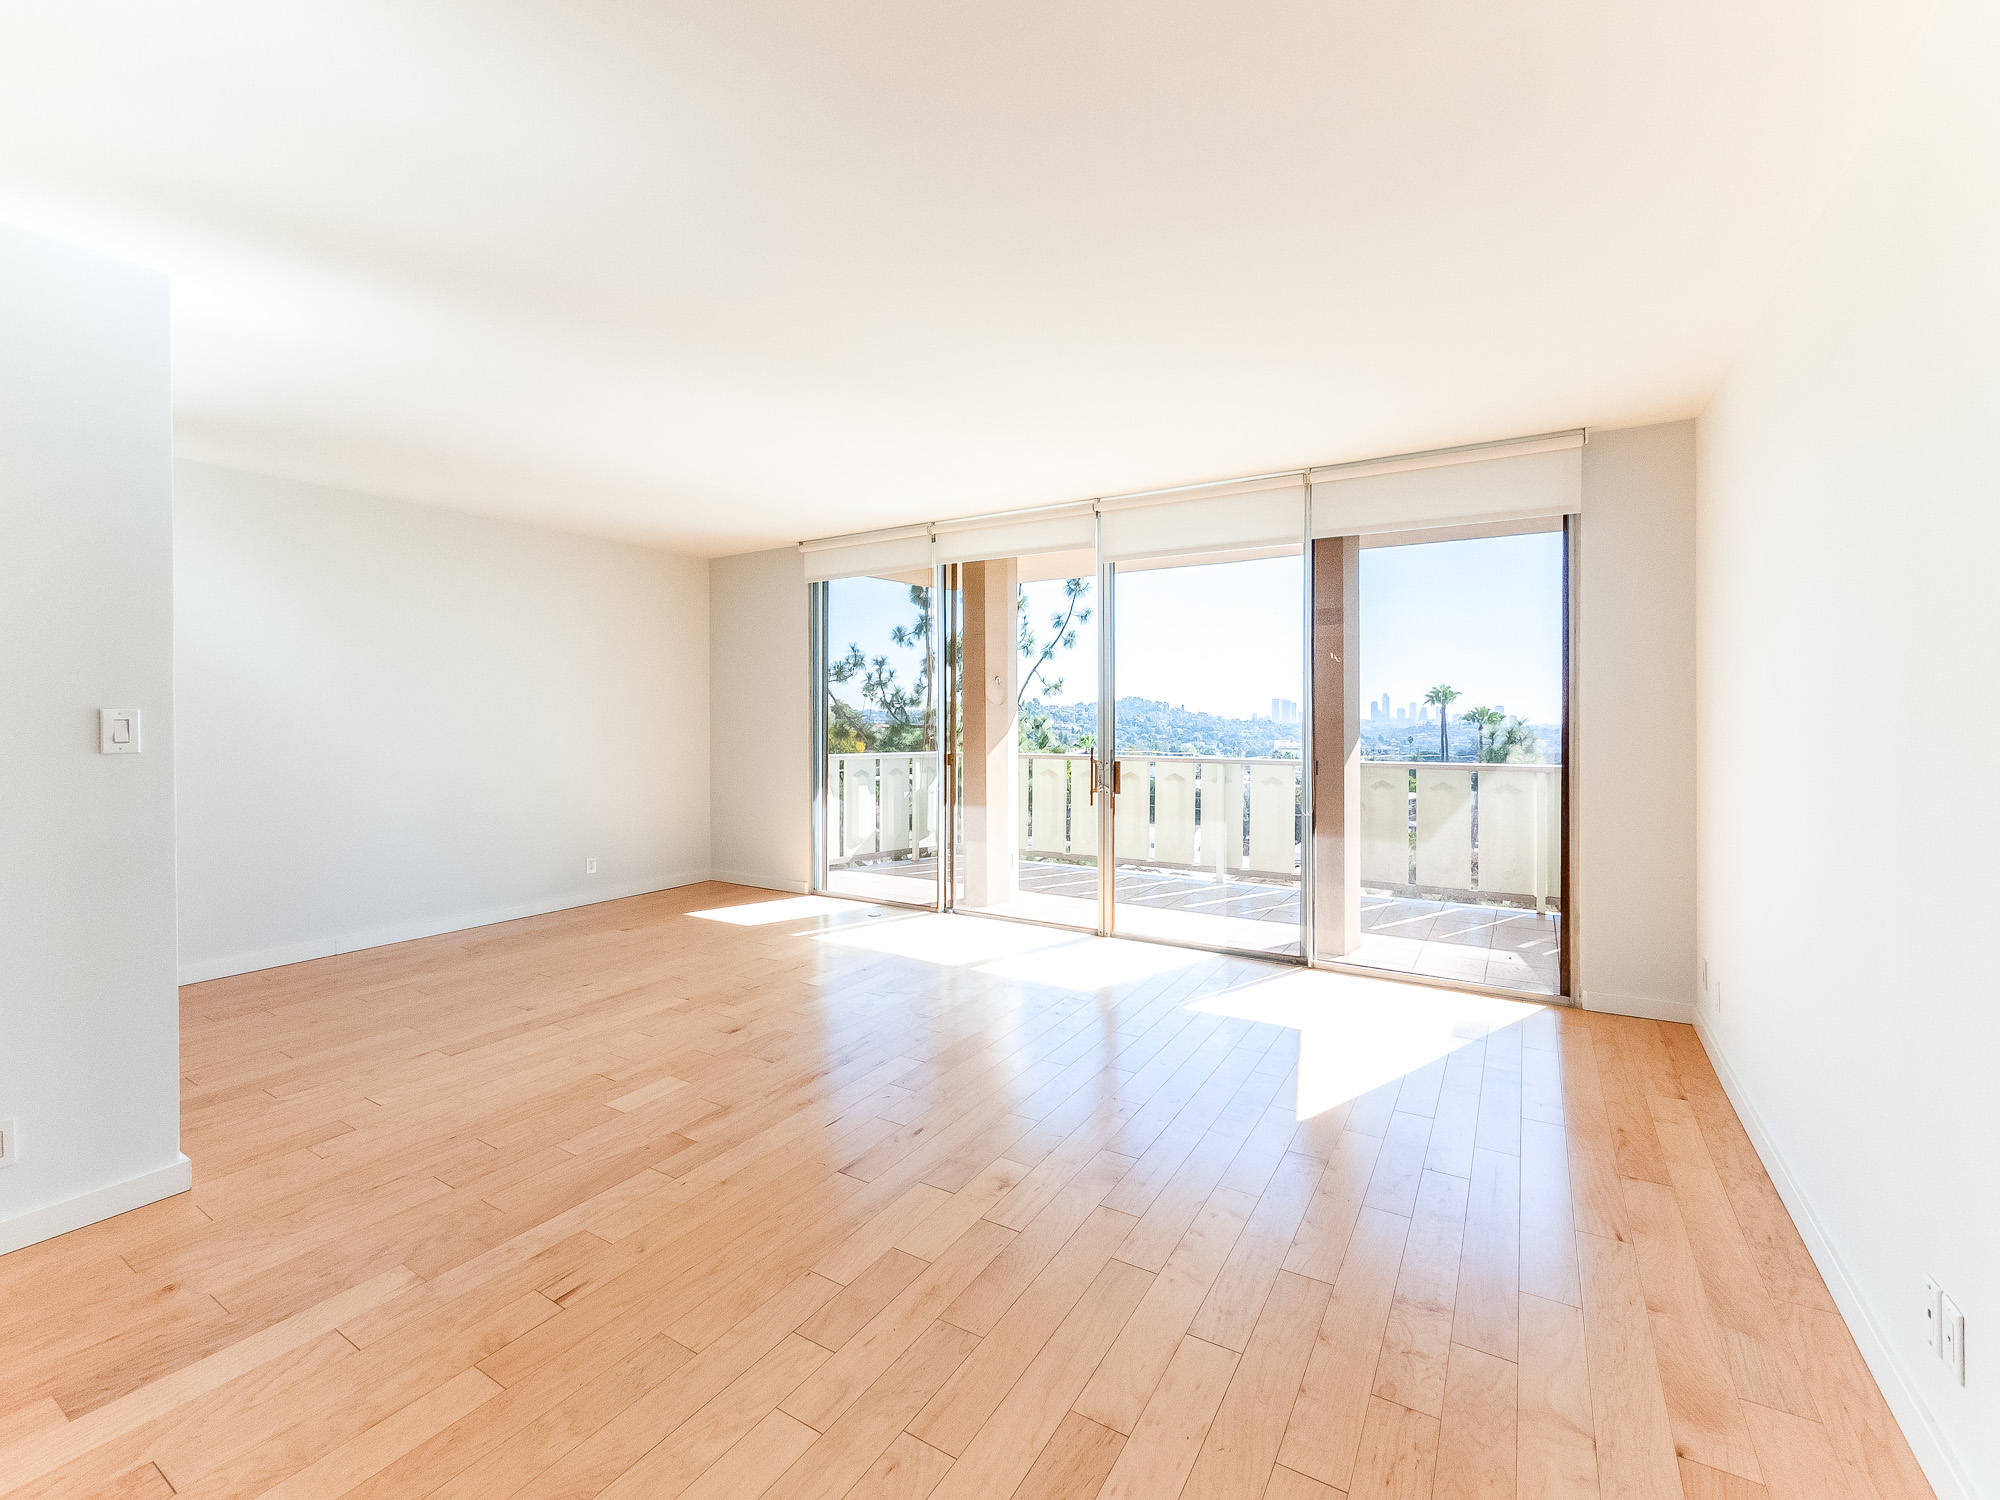 Bright & Sophisticated Condo W/Amazing Views | Prime Los Feliz Neighborhood |Private Balcony + On-Site Amenities | Parking Included